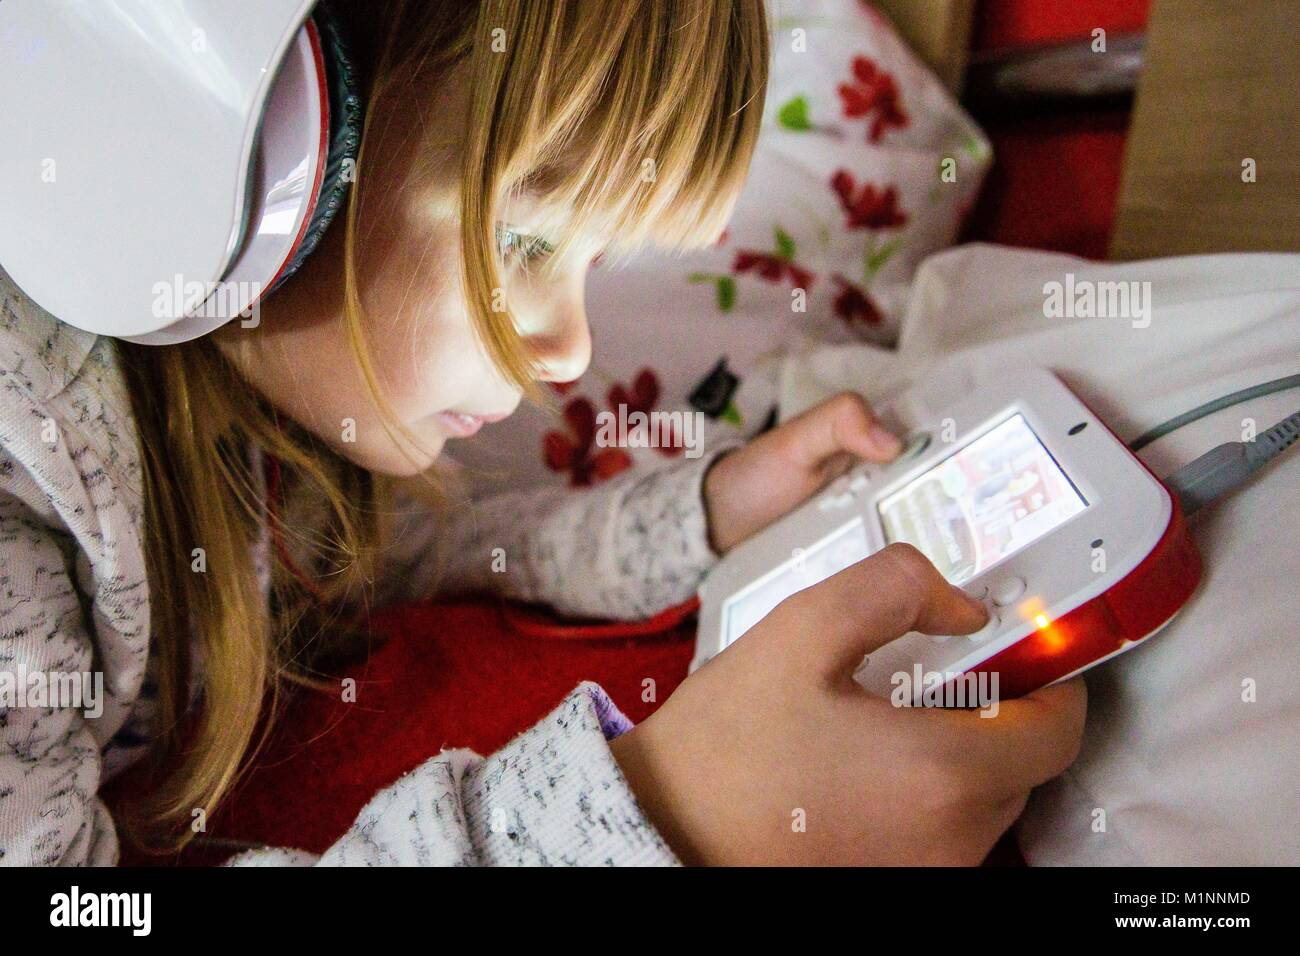 6 year old girl with headphone on plays with a Nintendo DS on a bed, Kernen, Germany, Nov. 5, 2017. | usage worldwide - Stock Image